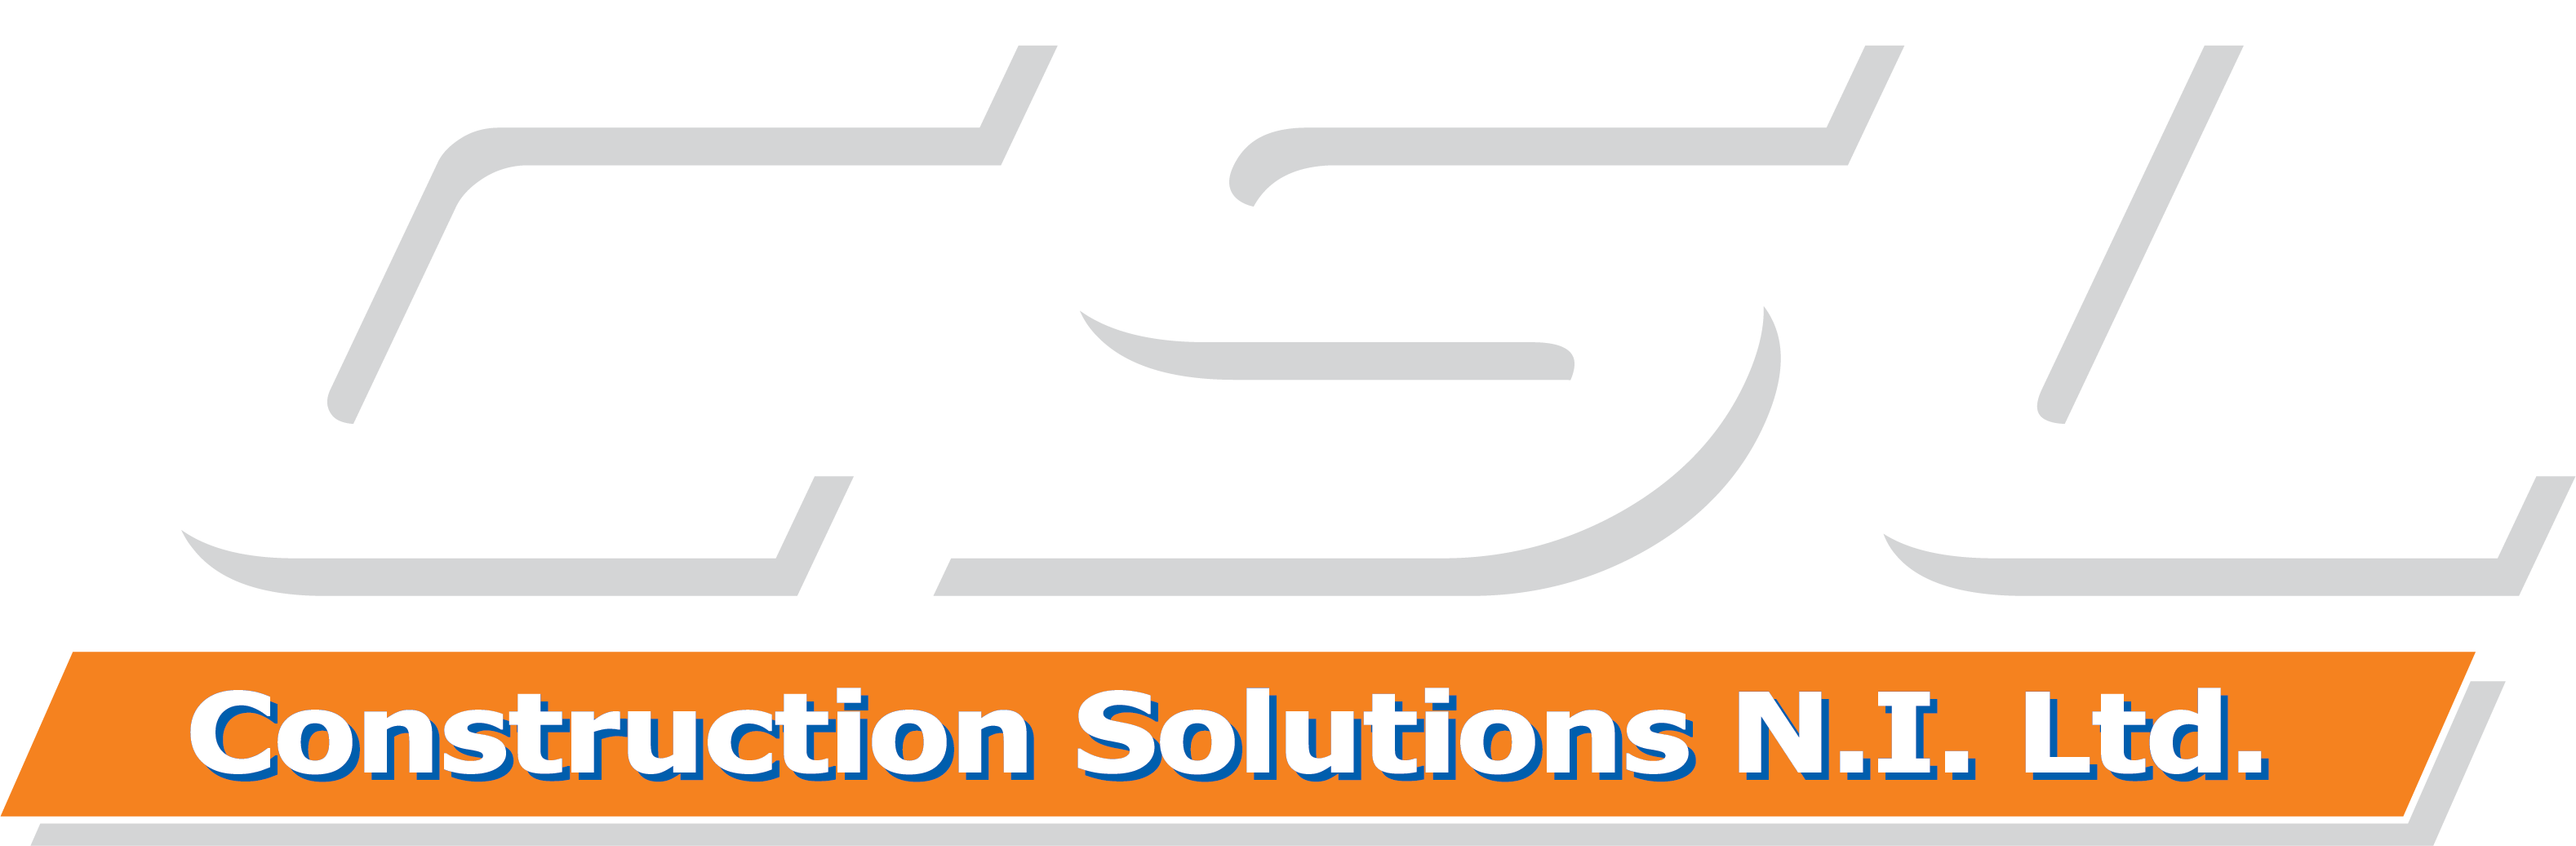 CSL NI - Groundsworks & Utilities Specialist, Plant Hire & Sales, Plant Inspections | CSL (Construction Solutions N.I Ltd)